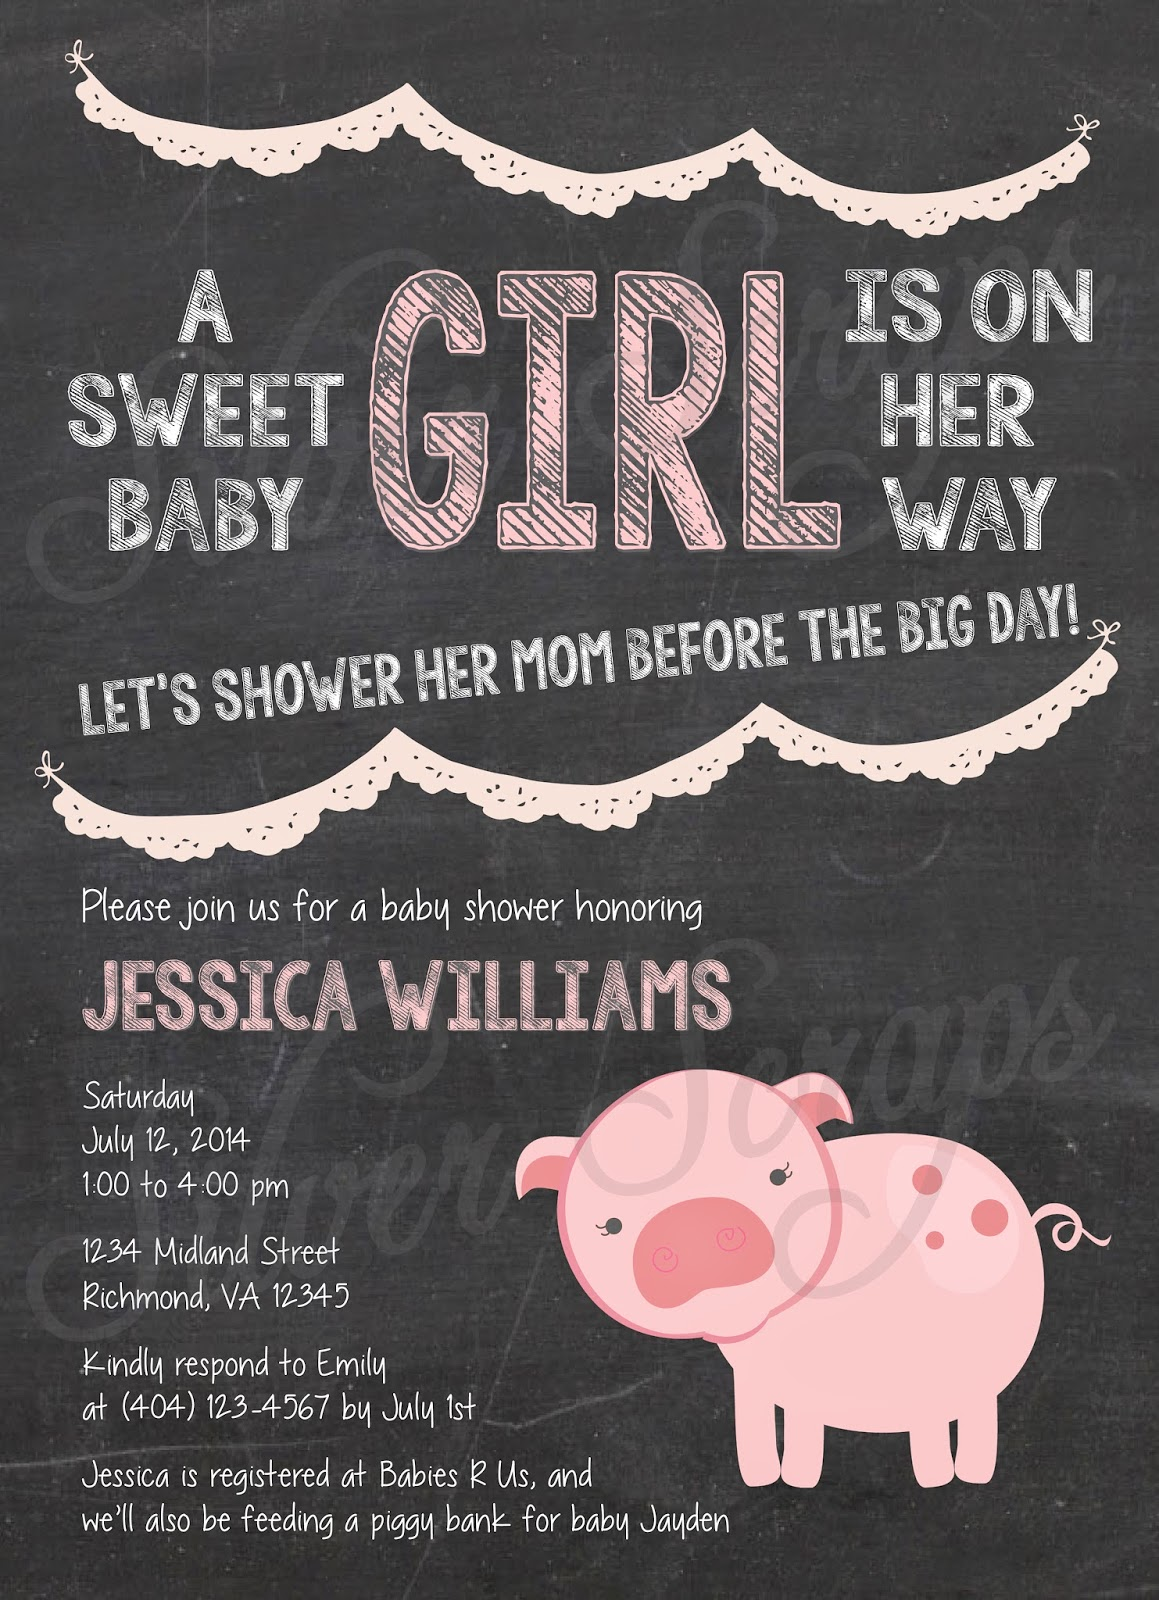 Chalkboard, Bunting and Pink Piggy Custom Girl Baby Shower Invitation - Pig Farm Garland Banner Flags Chalk Black White - 5 Printable Designs - Silver Scraps Peach Light Pink Blush Cream Lace Doily Vintage